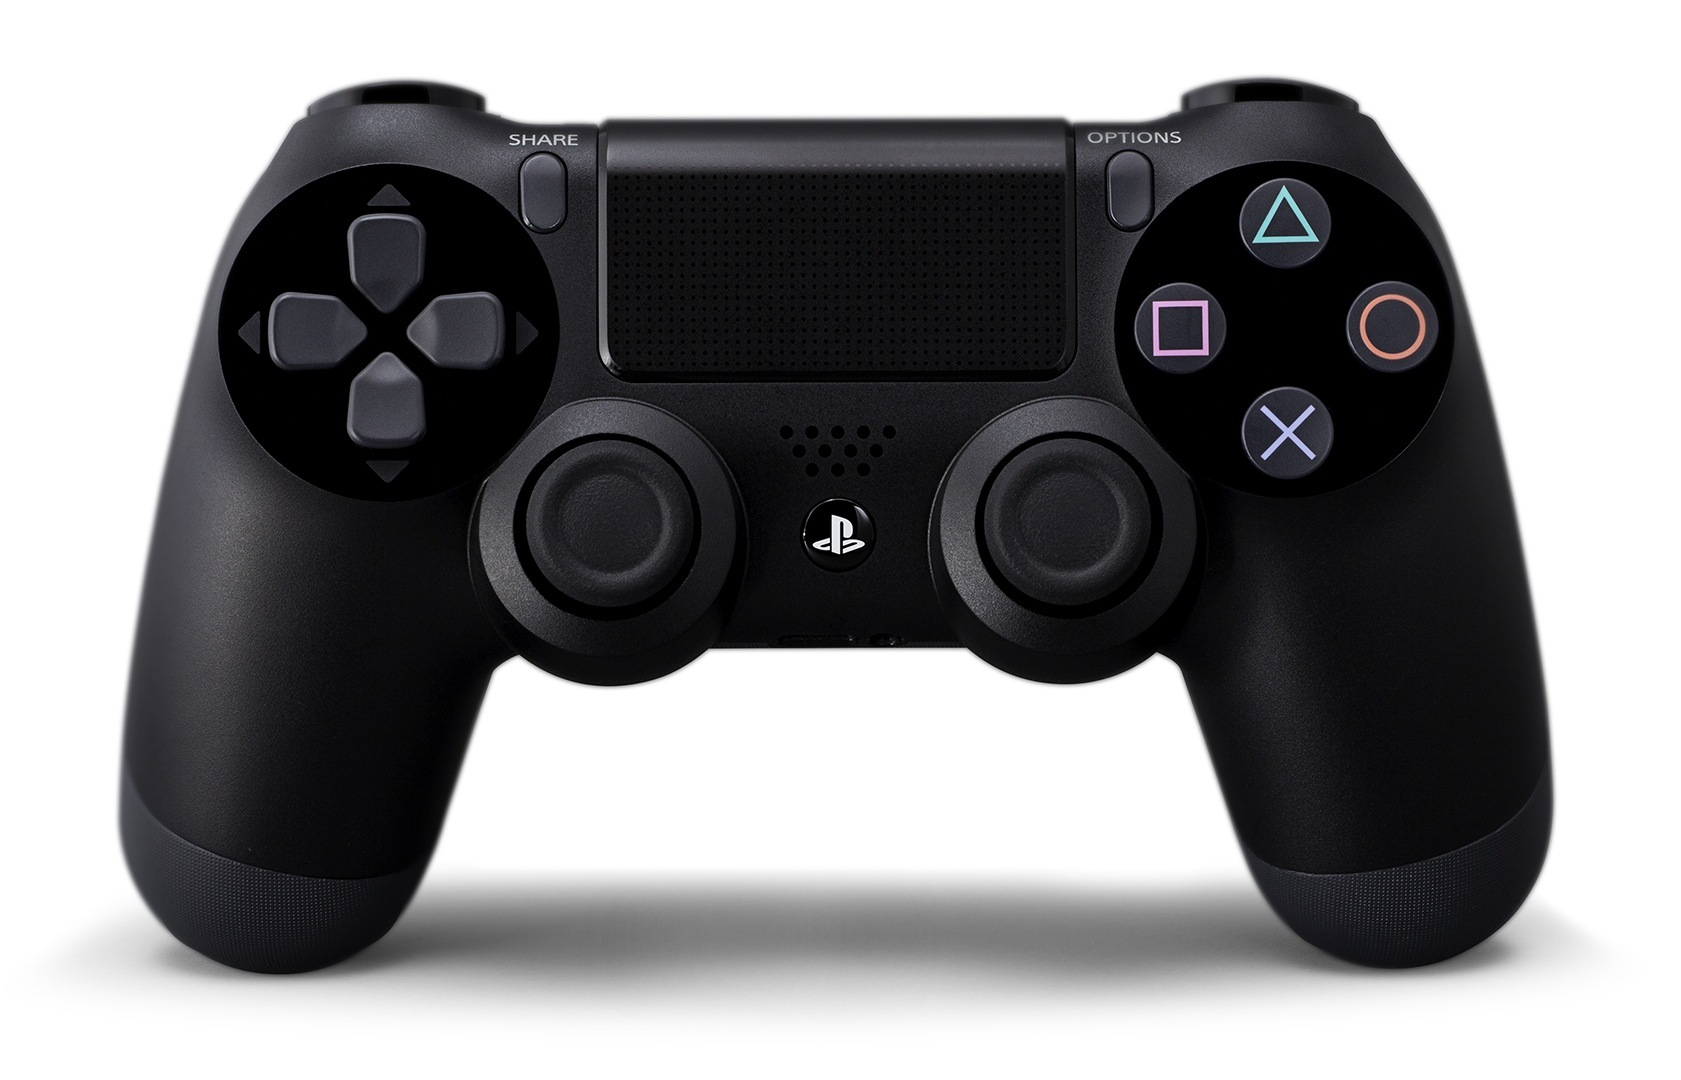 PS4 Controller works natively with the PC